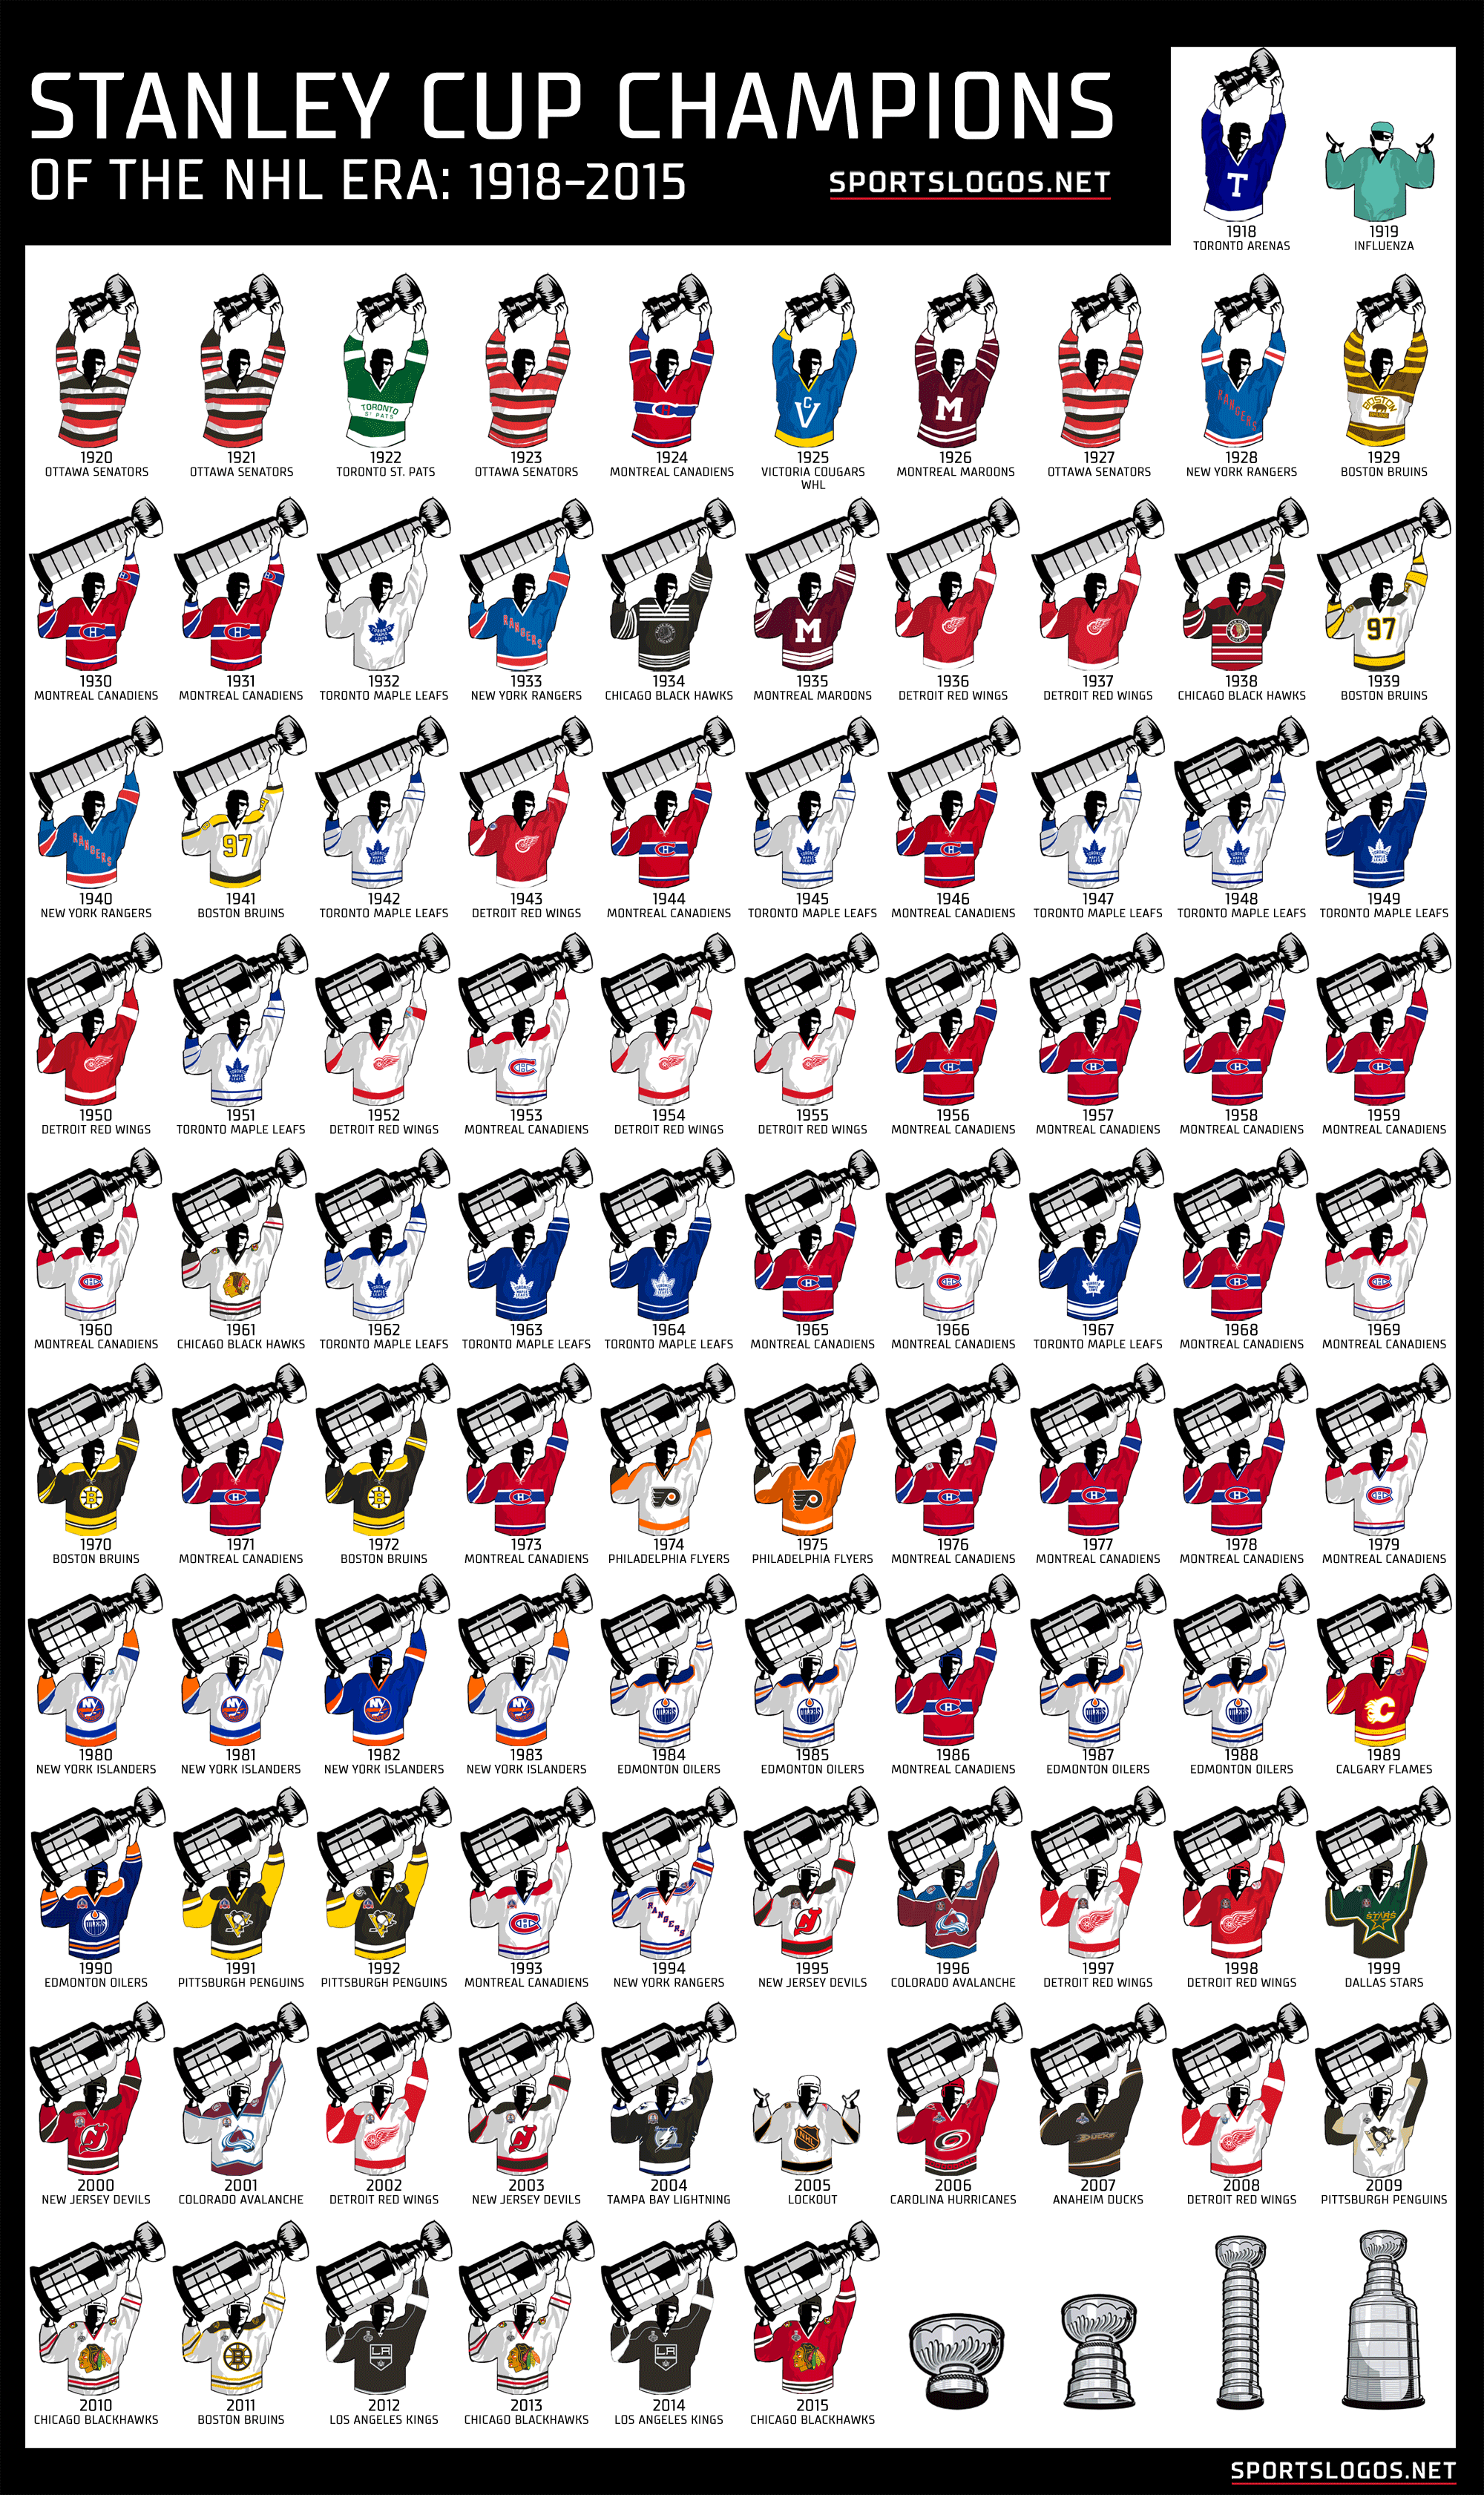 Find out how to express every nhl team logo as a pair of emoji icons find out how to express every nhl team logo as a pair of emoji icons on twitter hockey 3 pinterest team logo emoji and hockey geenschuldenfo Image collections